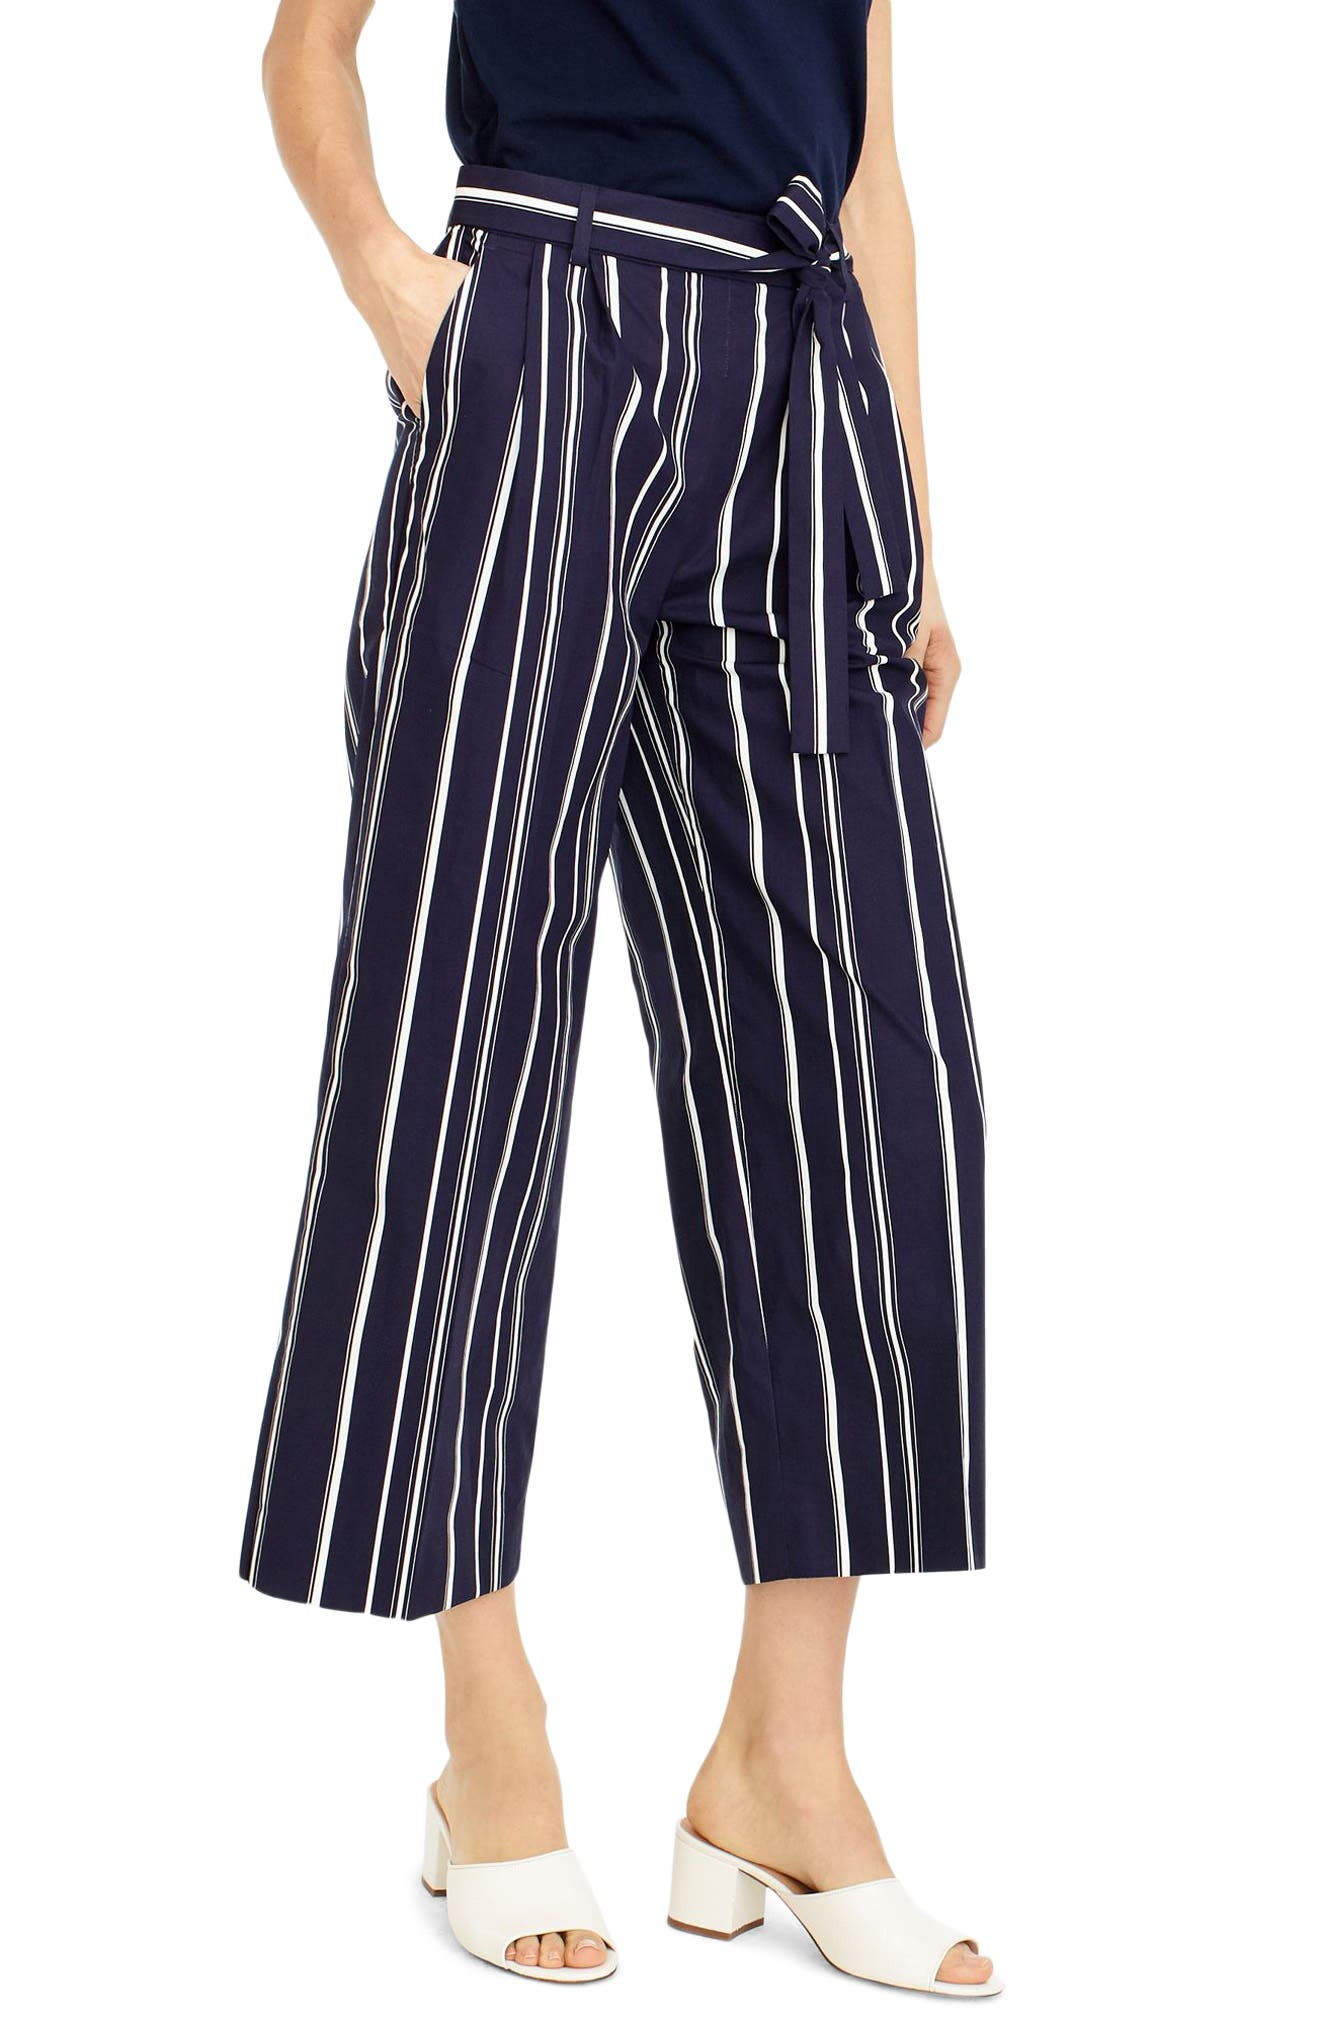 J.Crew Wide Leg Stripe Cotton Poplin Pants (Regular & Petite)